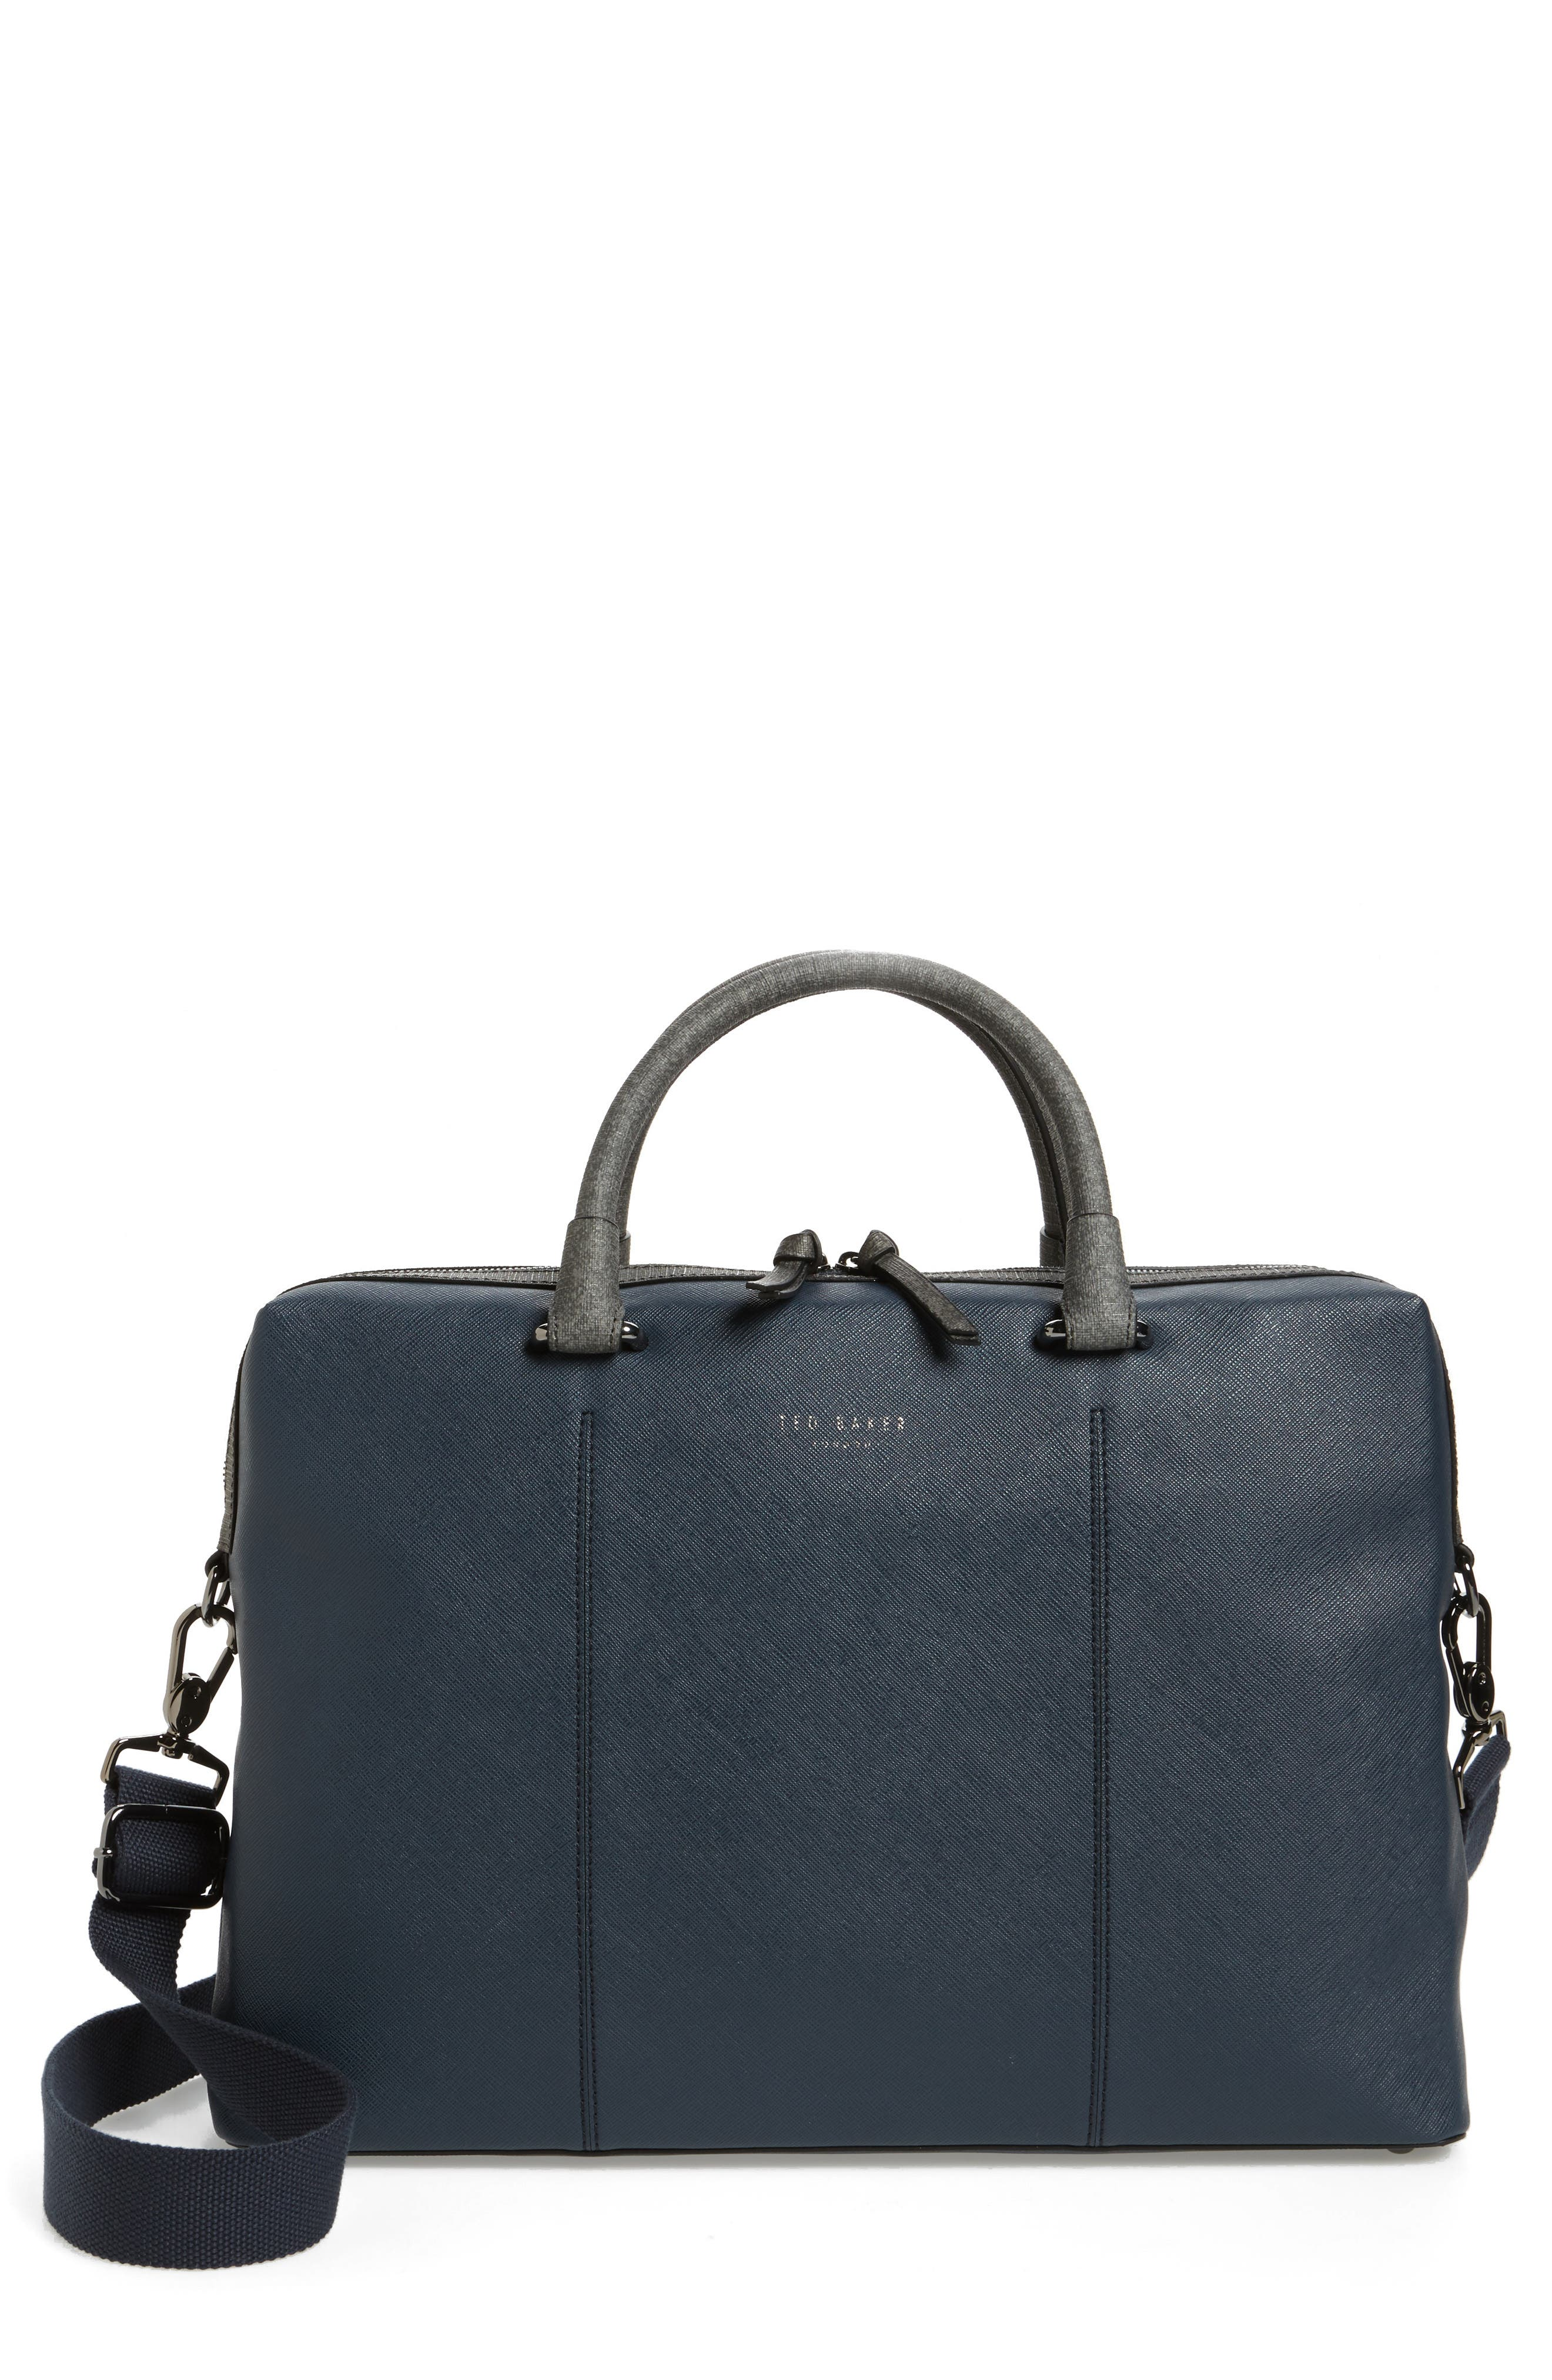 7db1a3adc8d25a Ted Baker Briefcases UPC   Barcode